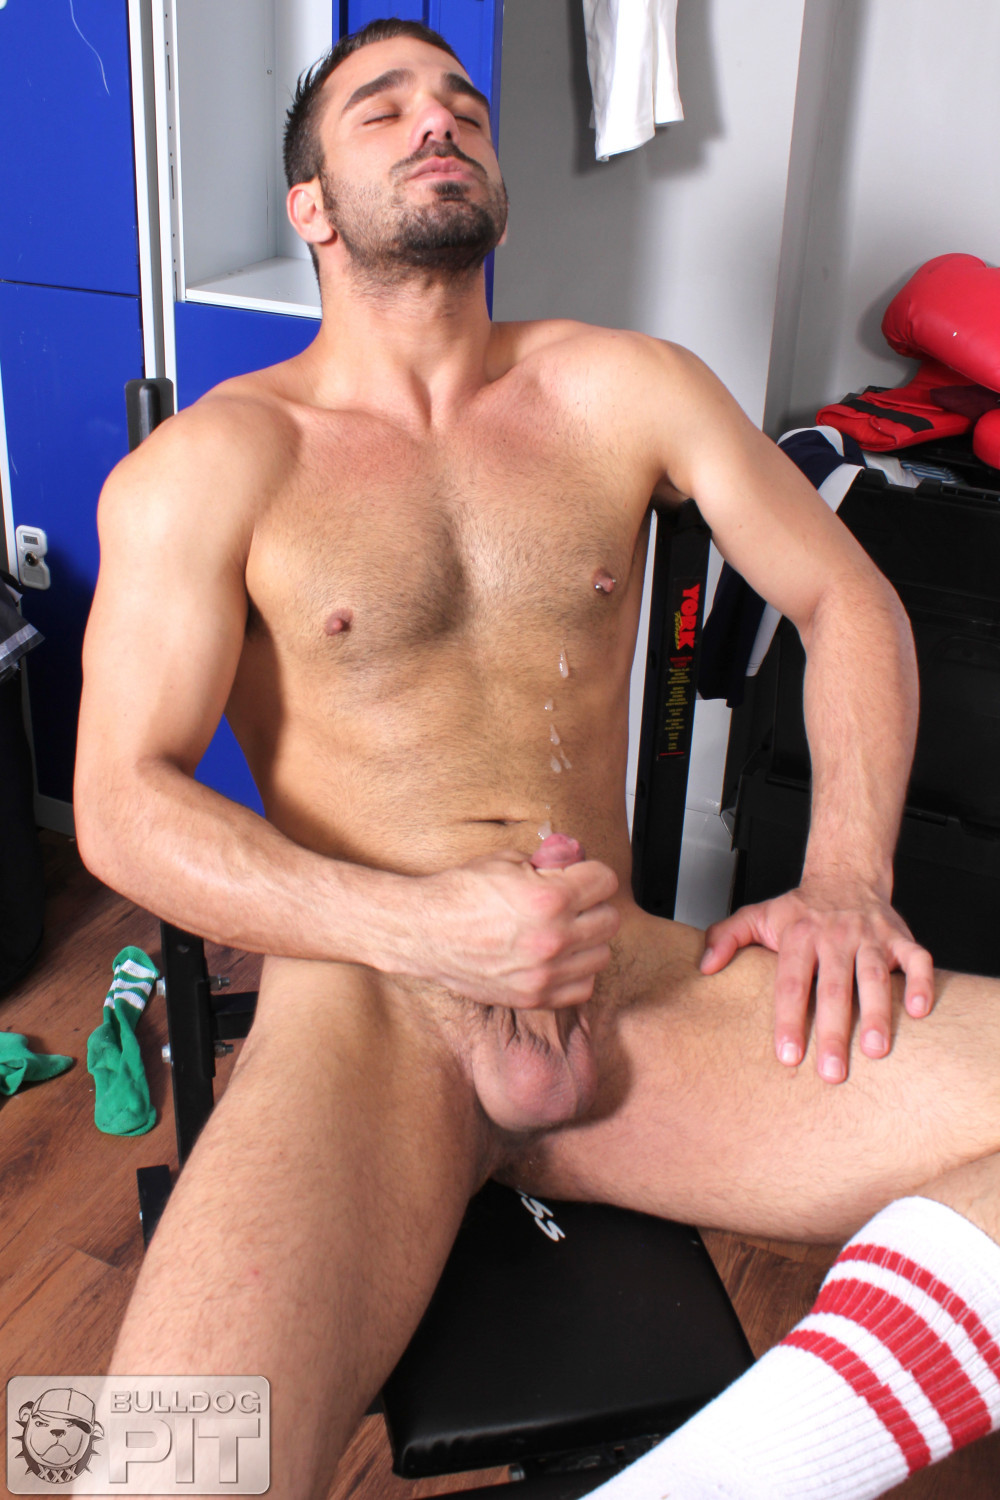 Bulldog Pit Jake Bolton Athlete Fucking Himself With A Dildo Amateur Gay Porn 10 Jake Bolton: Hung Masculine Jock Fucks Himself With Dildos